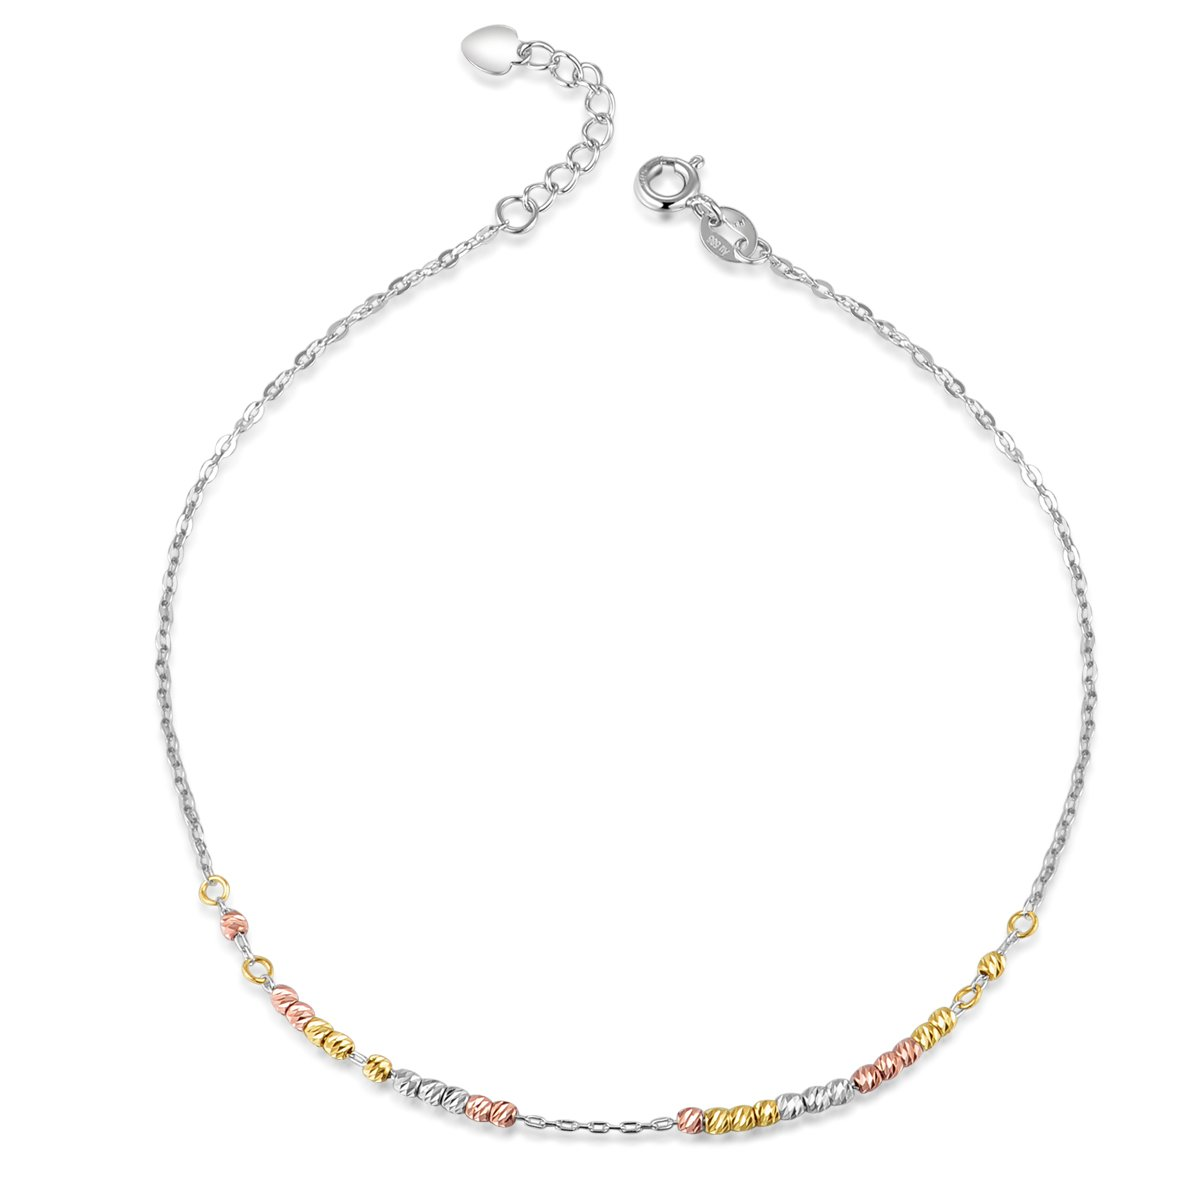 MaBelle 14K Tri-Color Gold Yellow, Rose and White Tiny Running Beads Chain Anklet (9.25'')